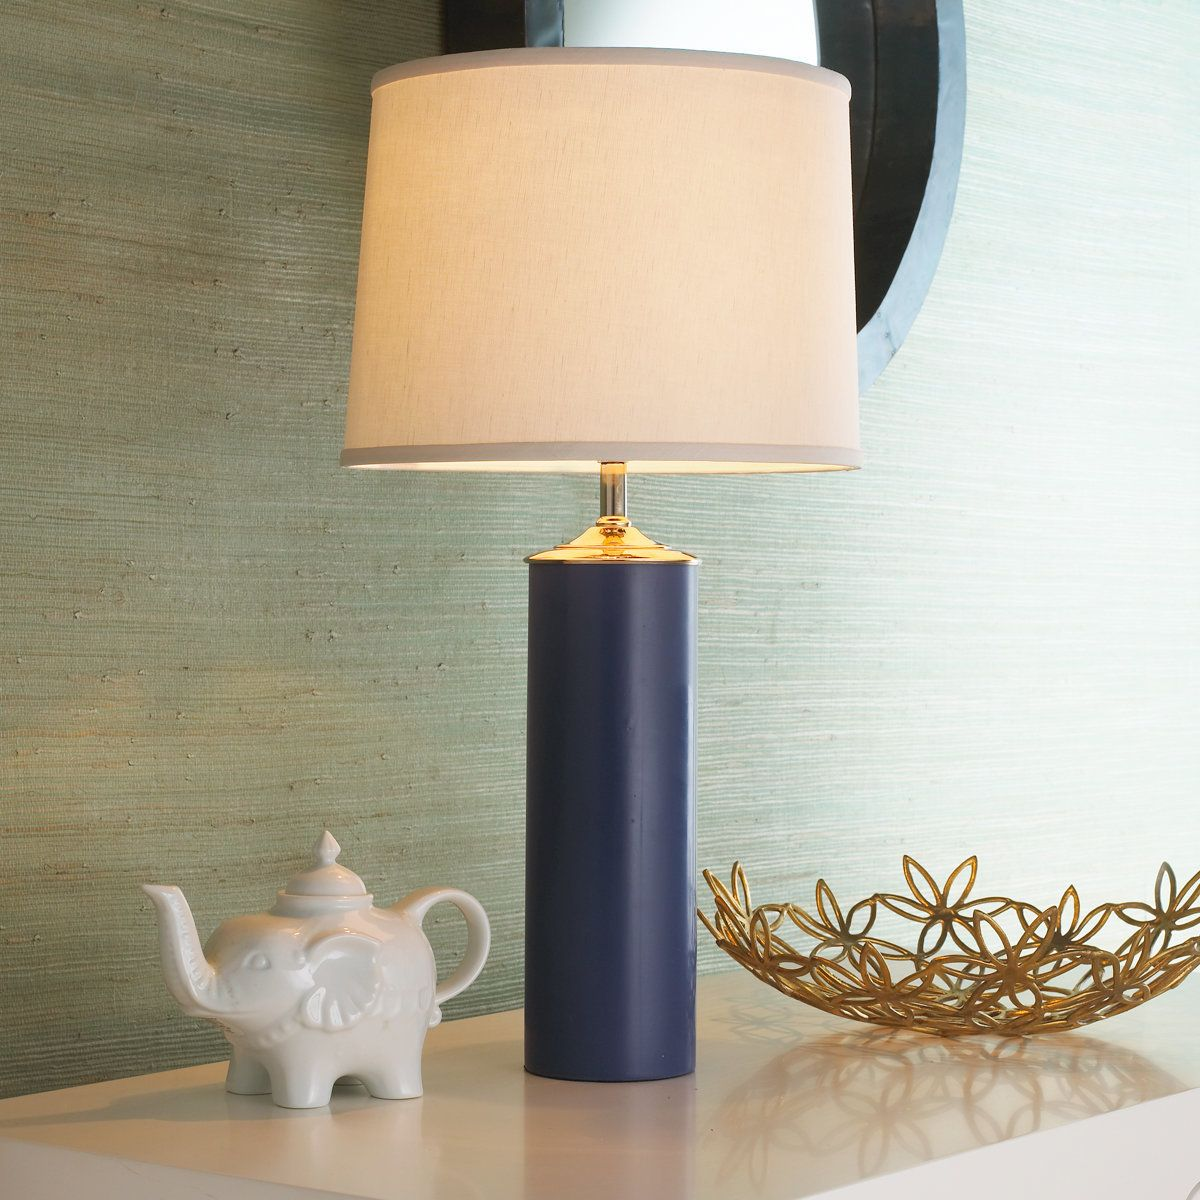 Modern Cylinder Ceramic Table Lamp Unique table lamps